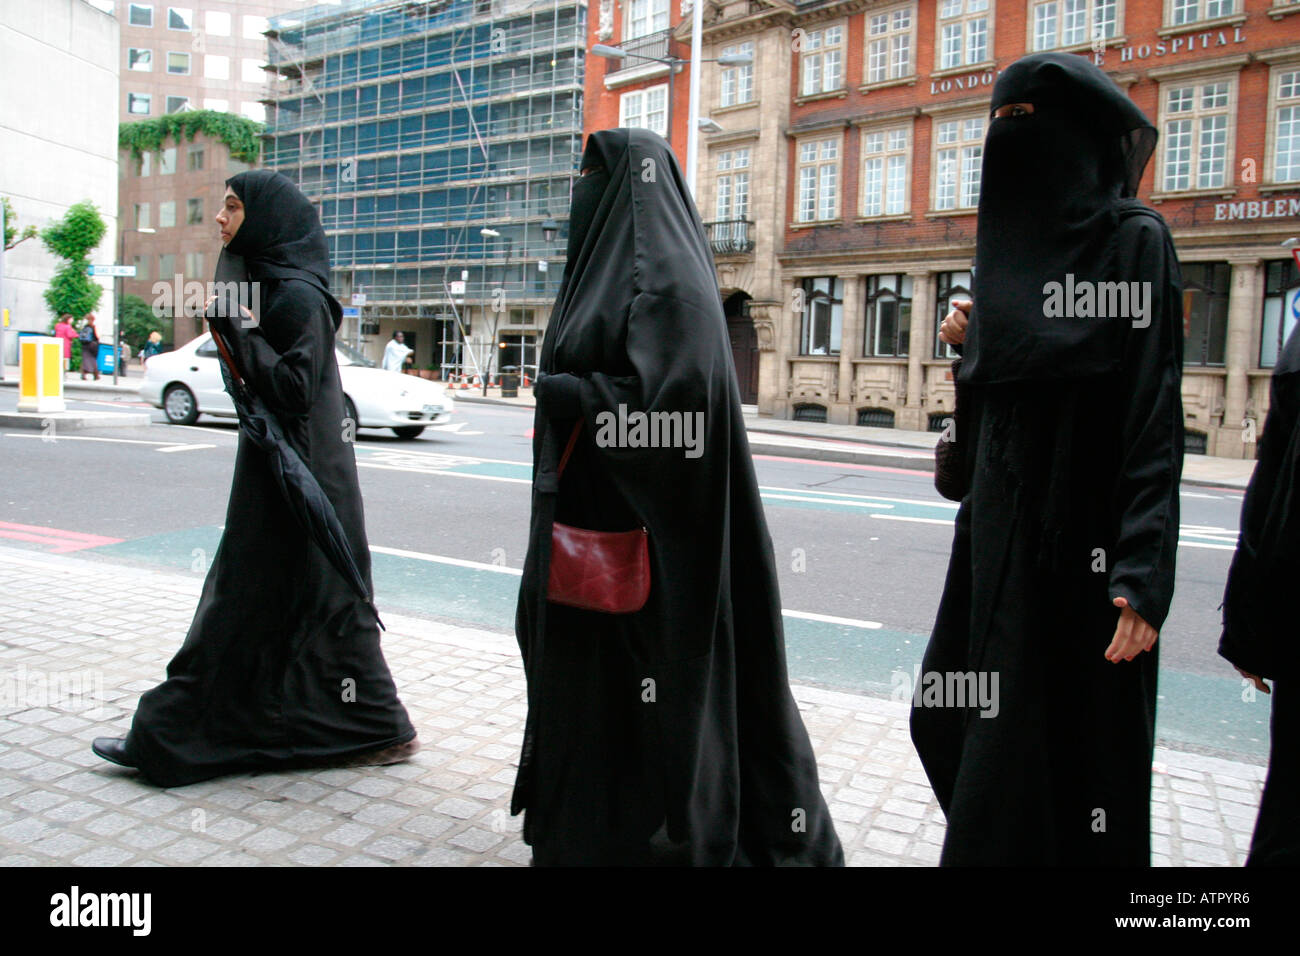 three women walking on a london street on a shopping trip dressed in black in the burka one carrying a handbag - Stock Image